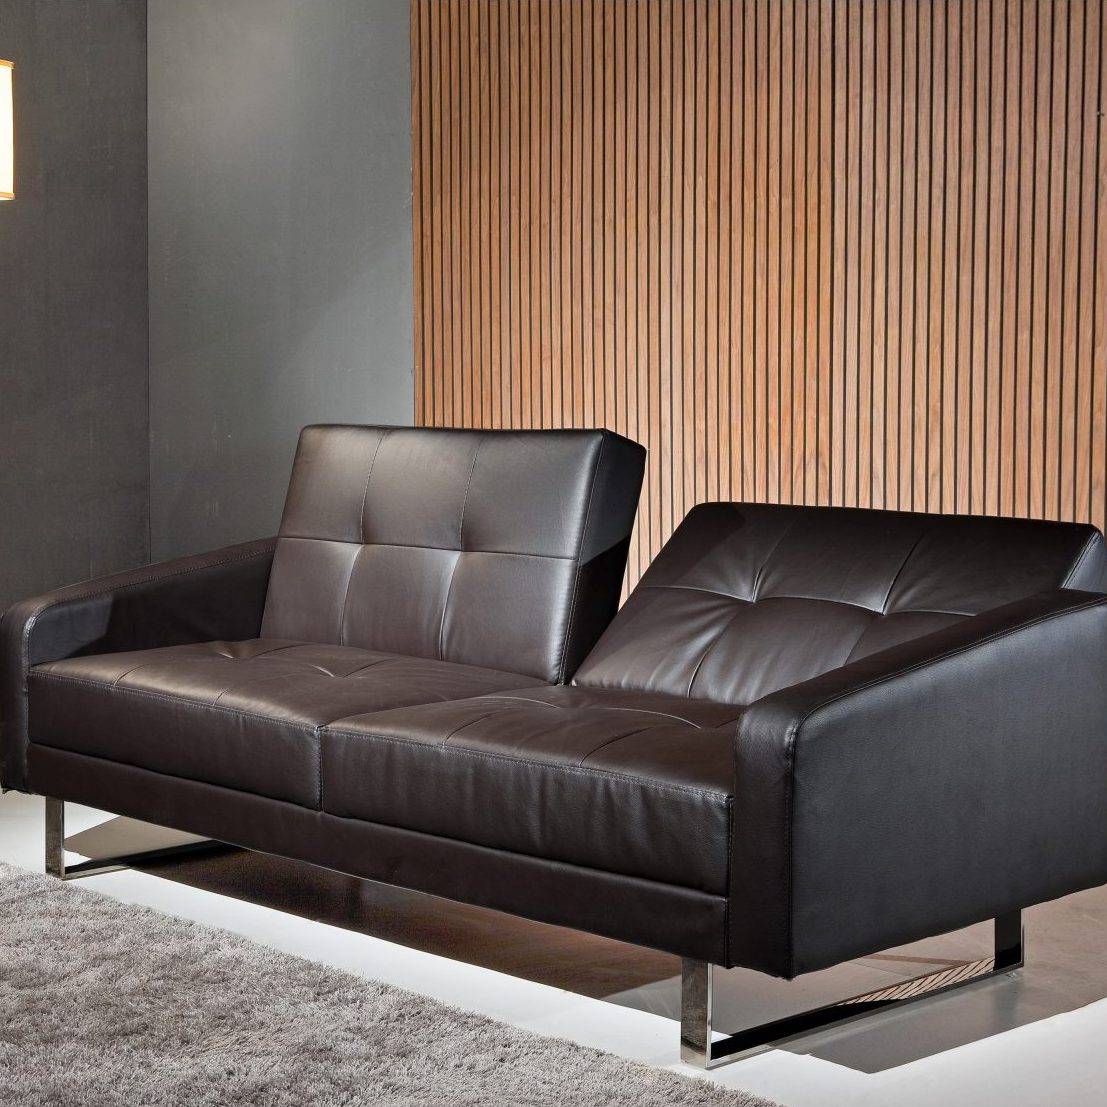 Borealis Black Polyurethane Sofa Bed With Stainless Steel Legs